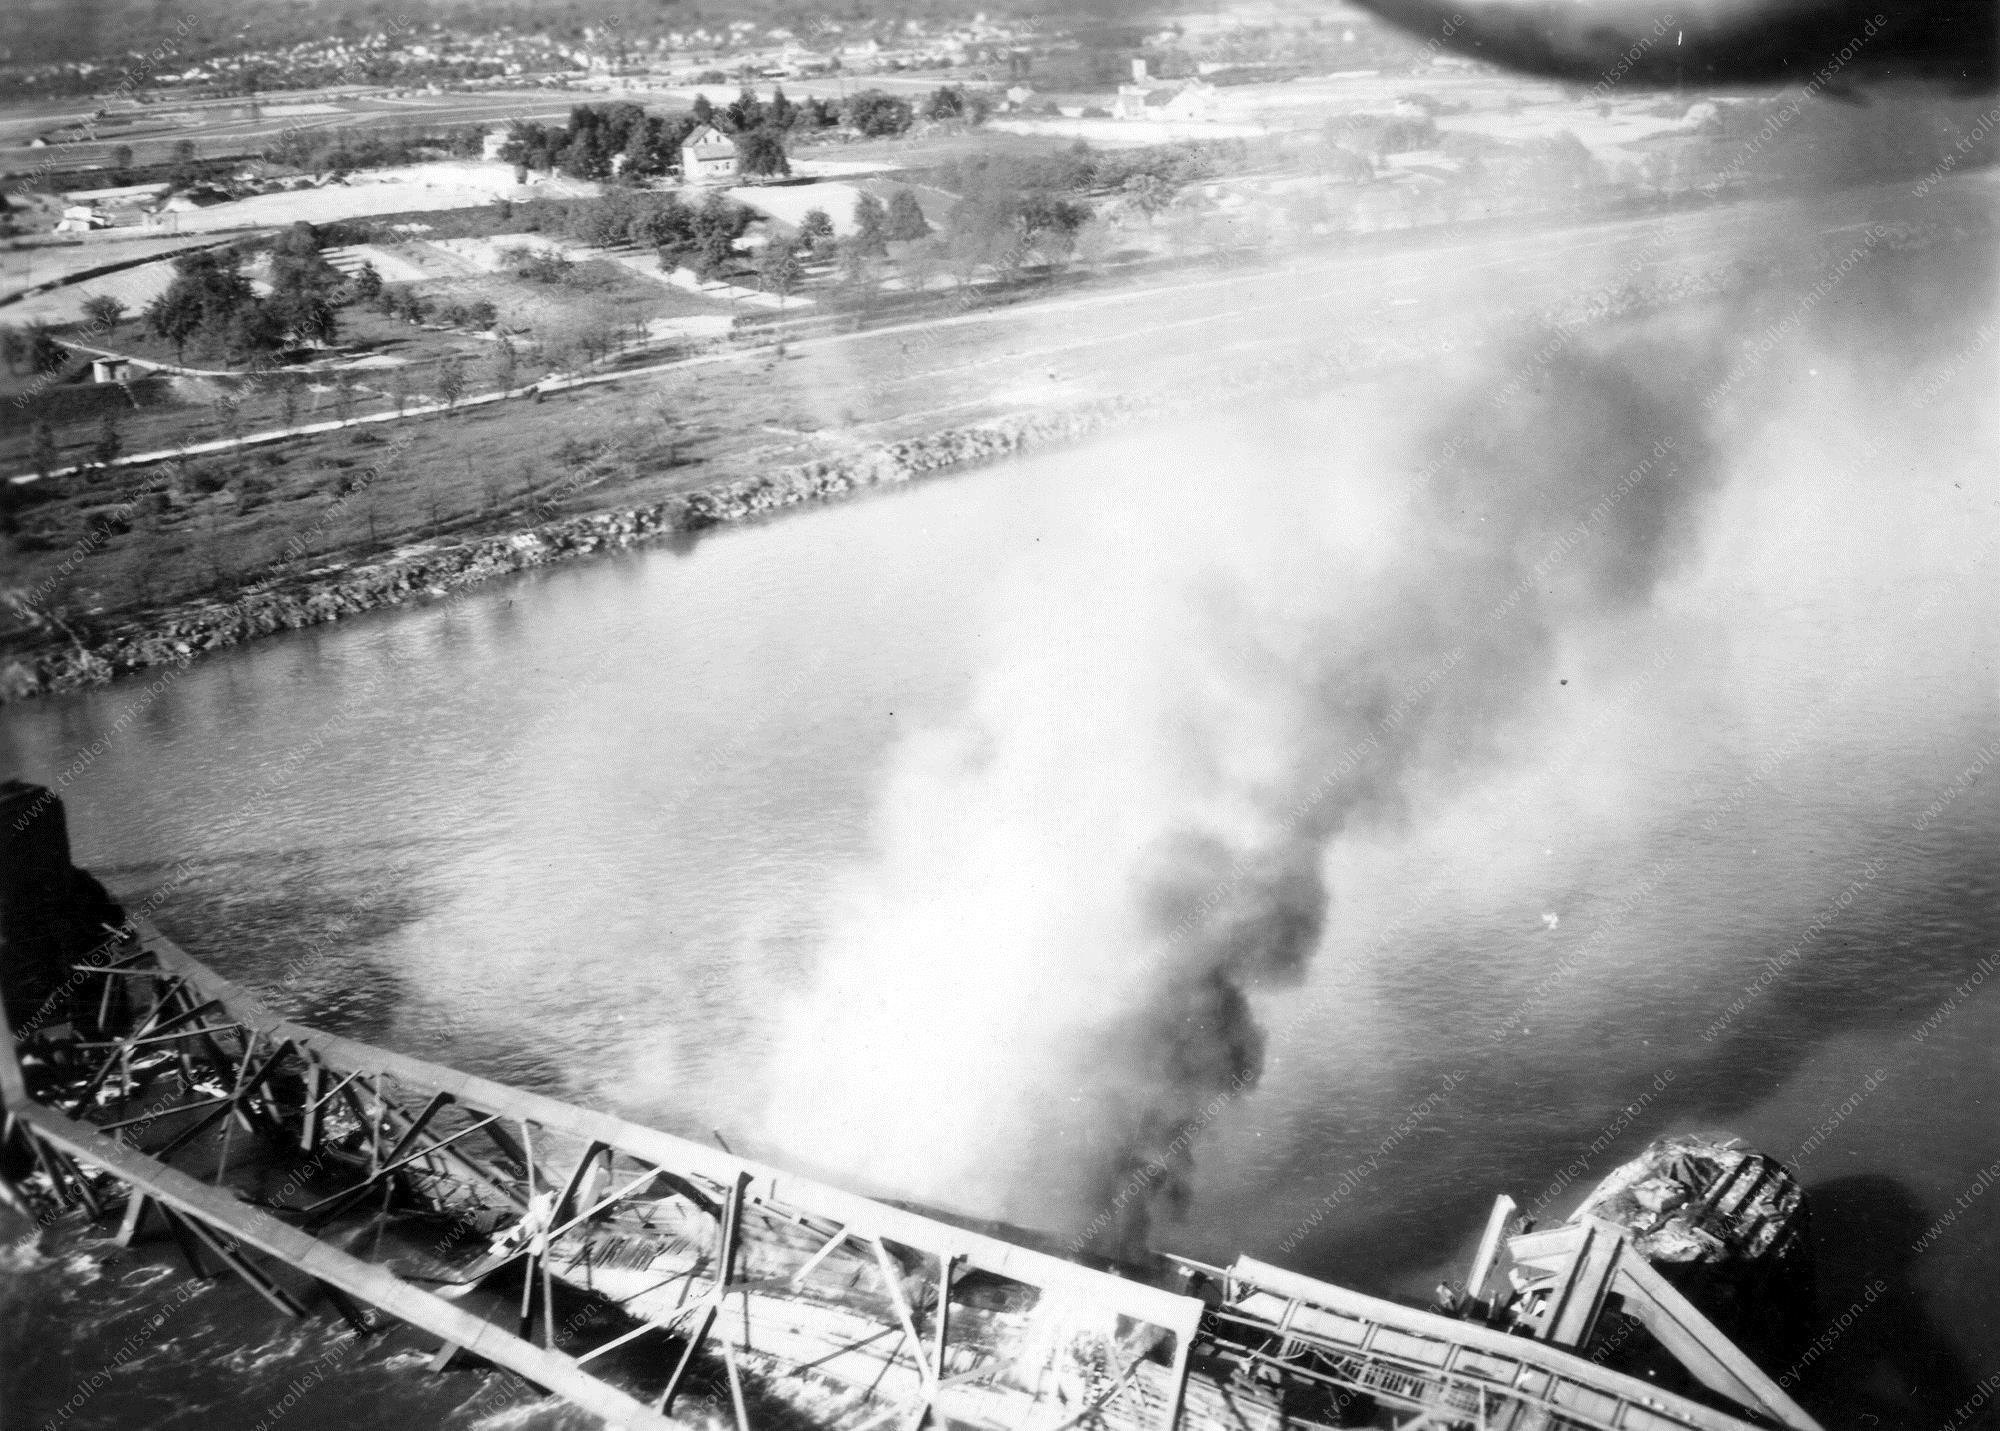 Plane Crash at the Engers Bridge - Parts of the wreck were salvaged 74 years later by the German Water Police